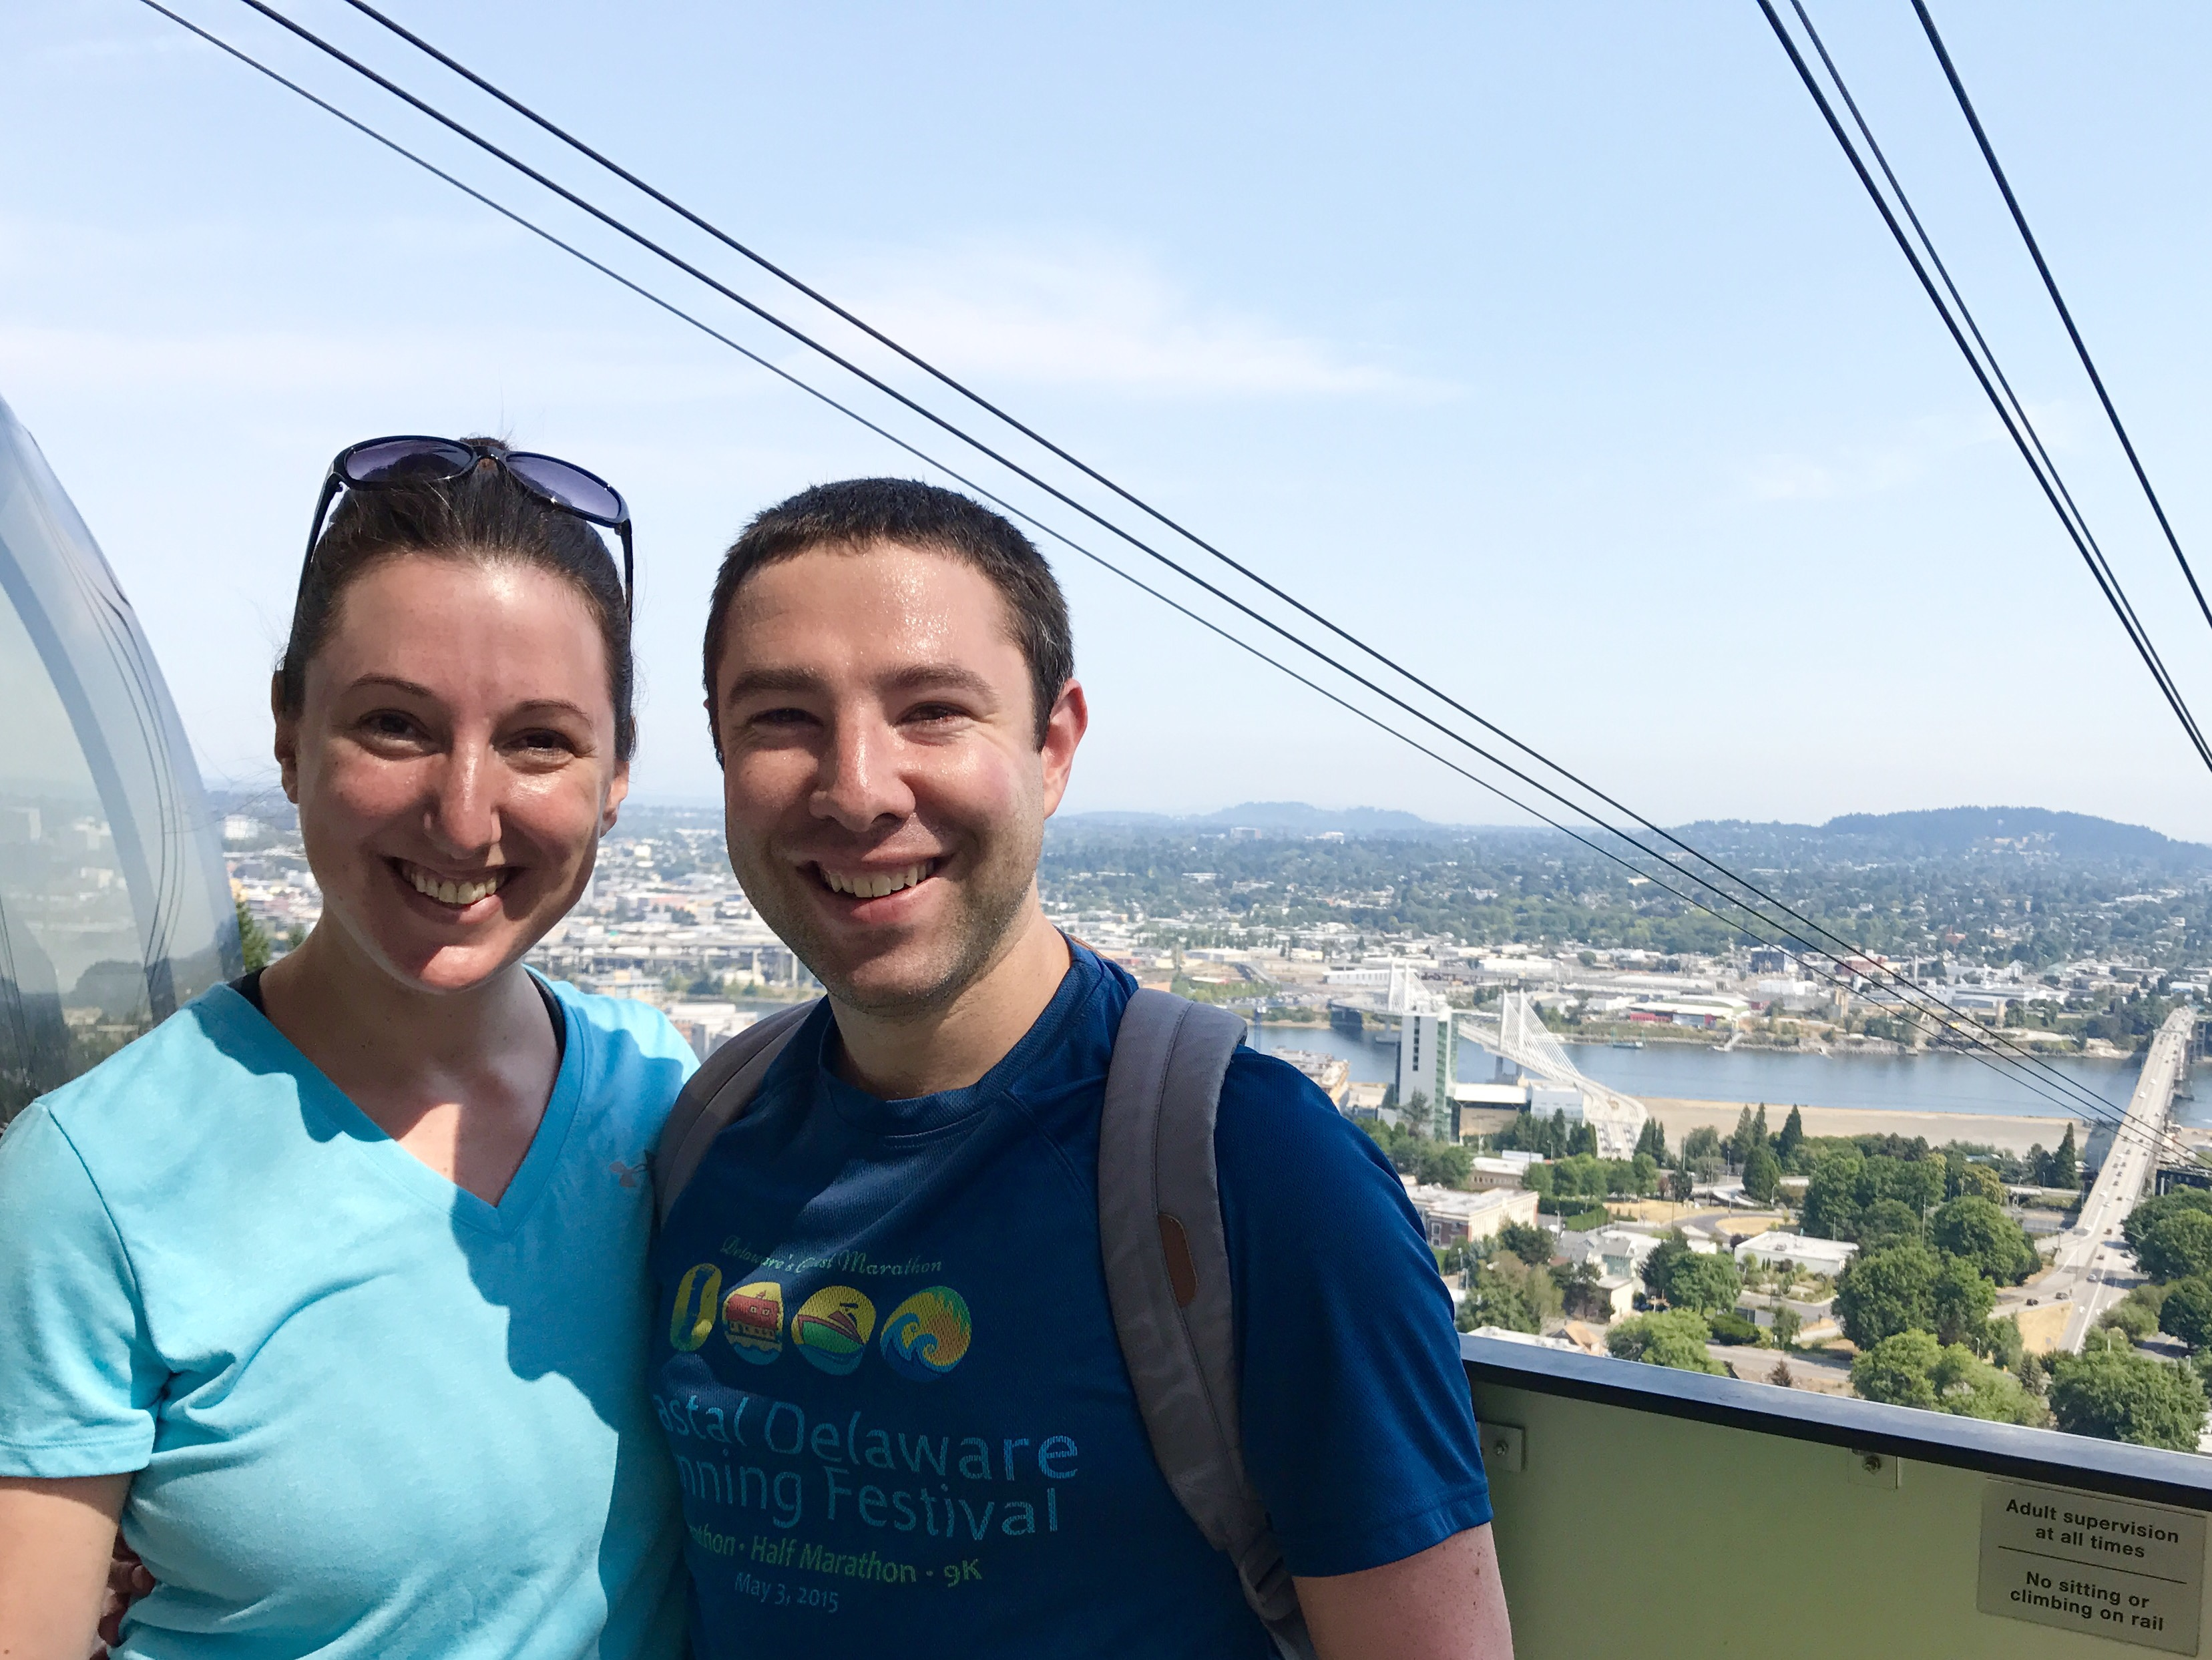 Marnay and Paul on the Portland aerial tram